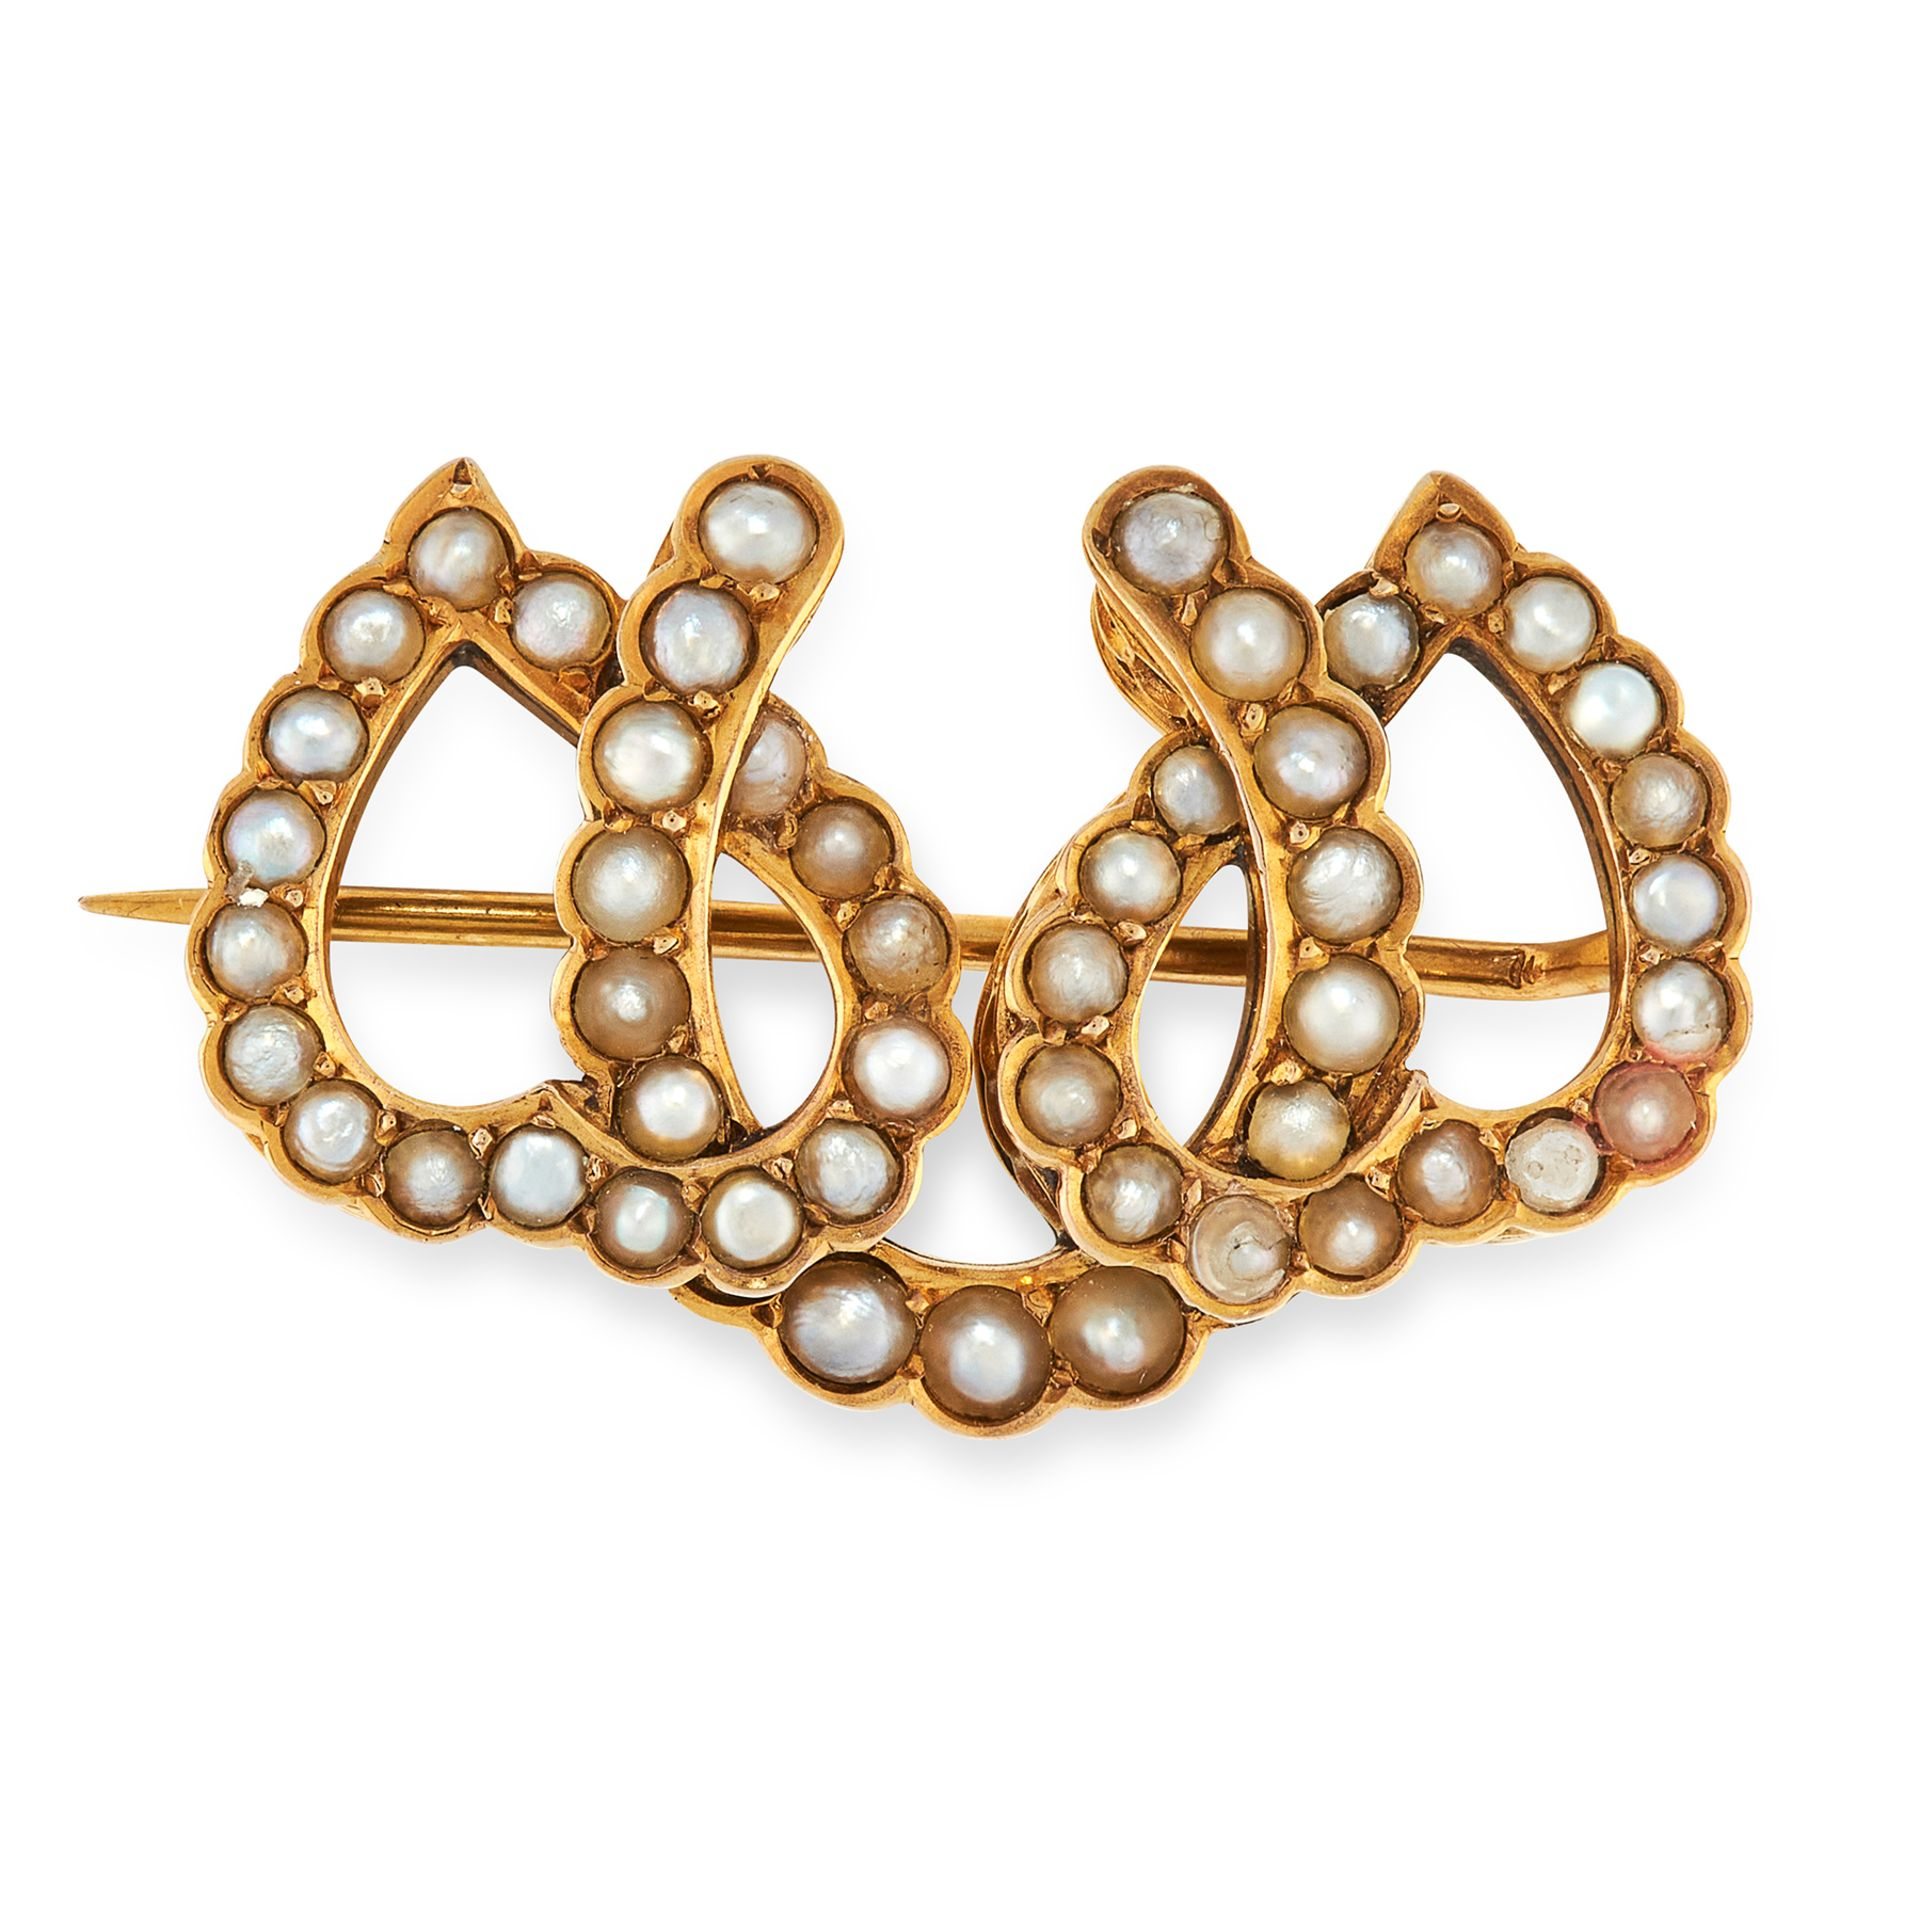 AN ANTIQUE PEARL BROOCH, 19TH CENTURY in high carat yellow gold, designed as a horseshoe interlocked